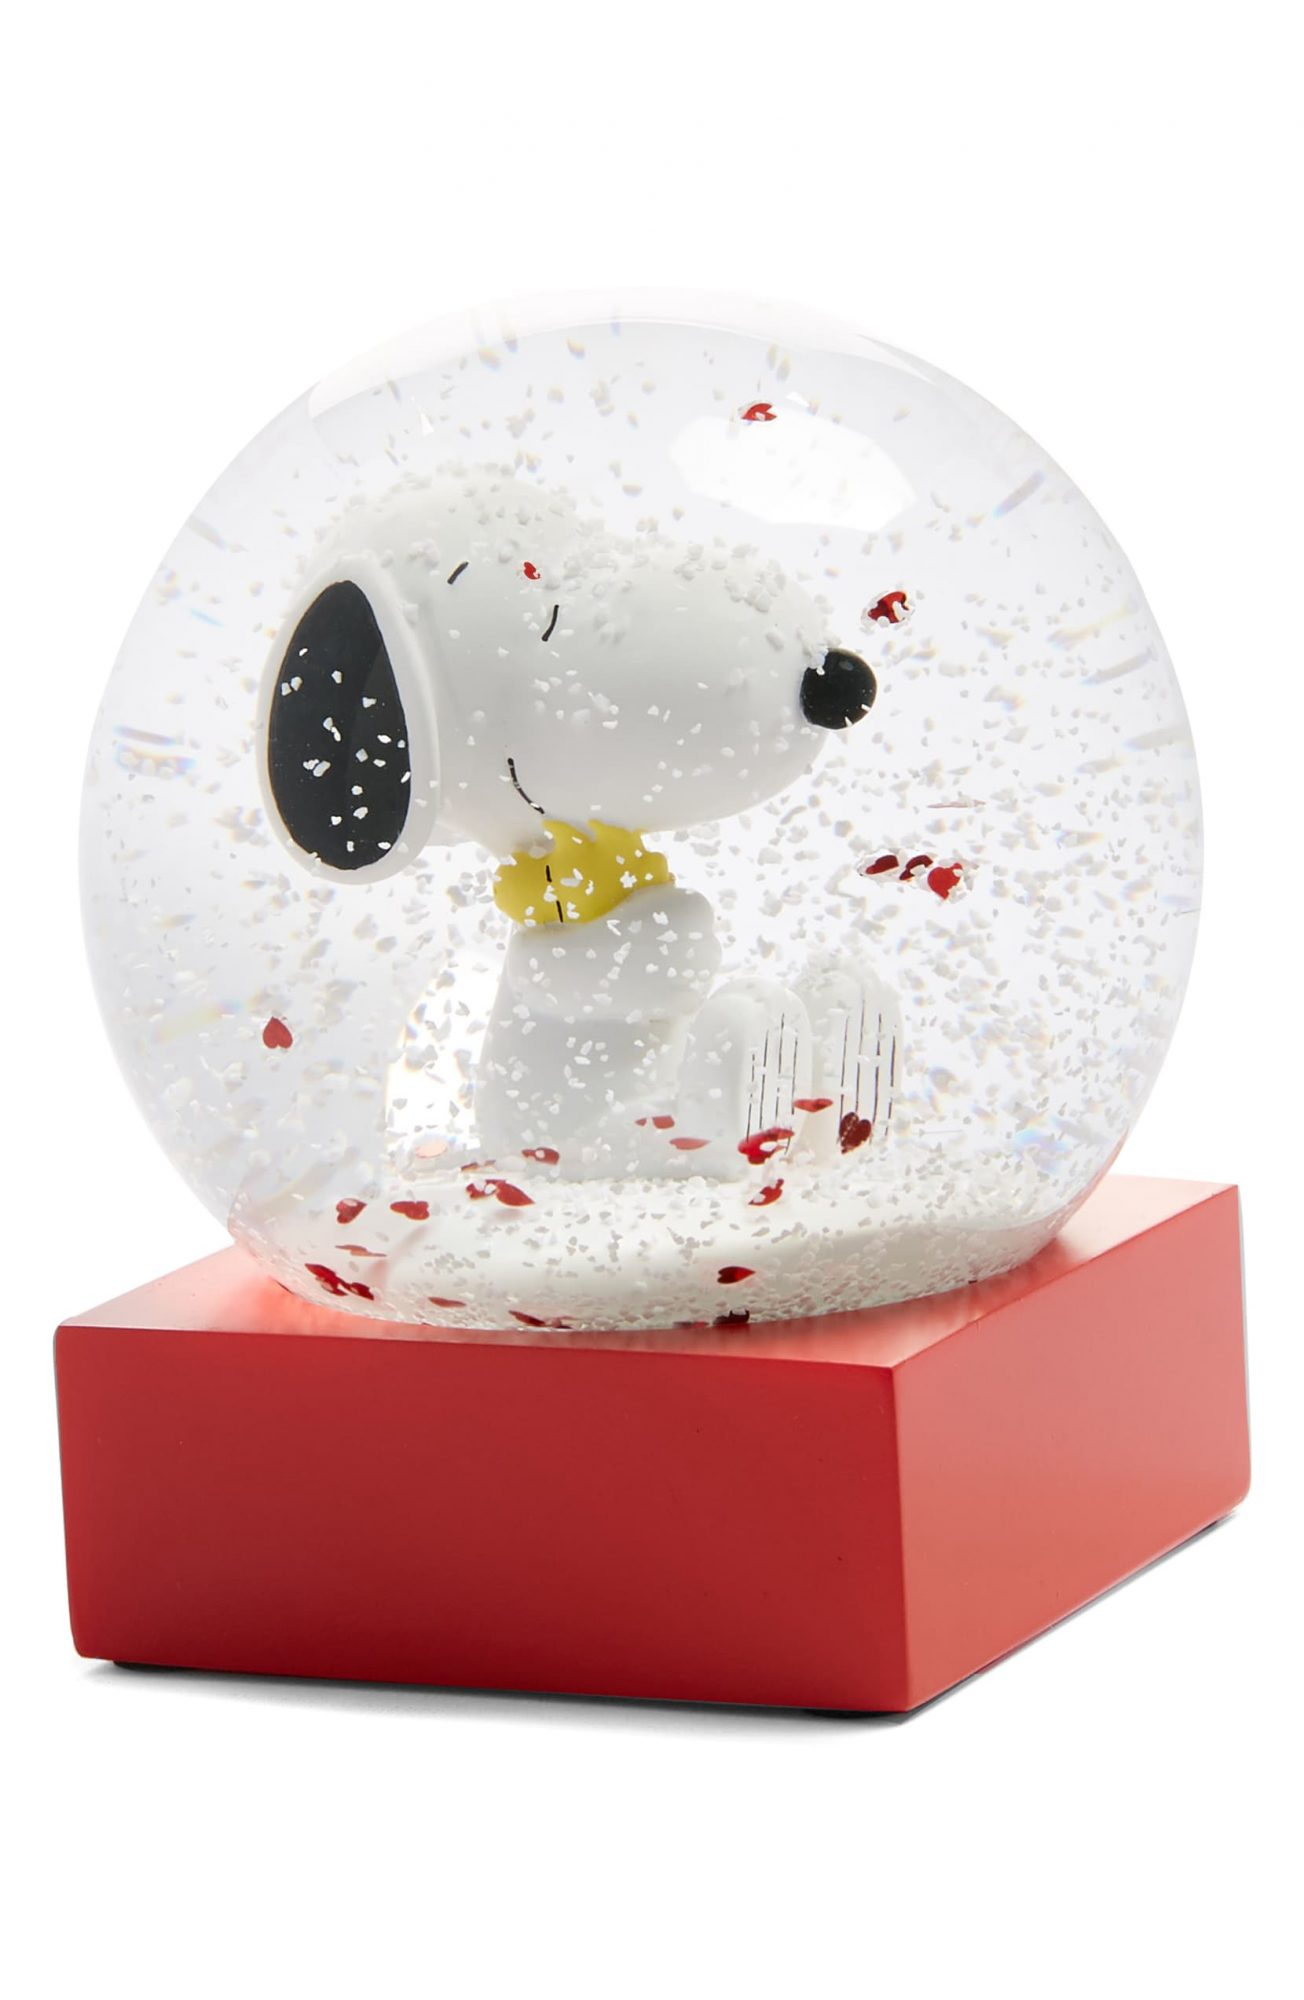 CoolSnowGlobes x Peanuts Snoopy Hug Snow Globe at Nordstrom